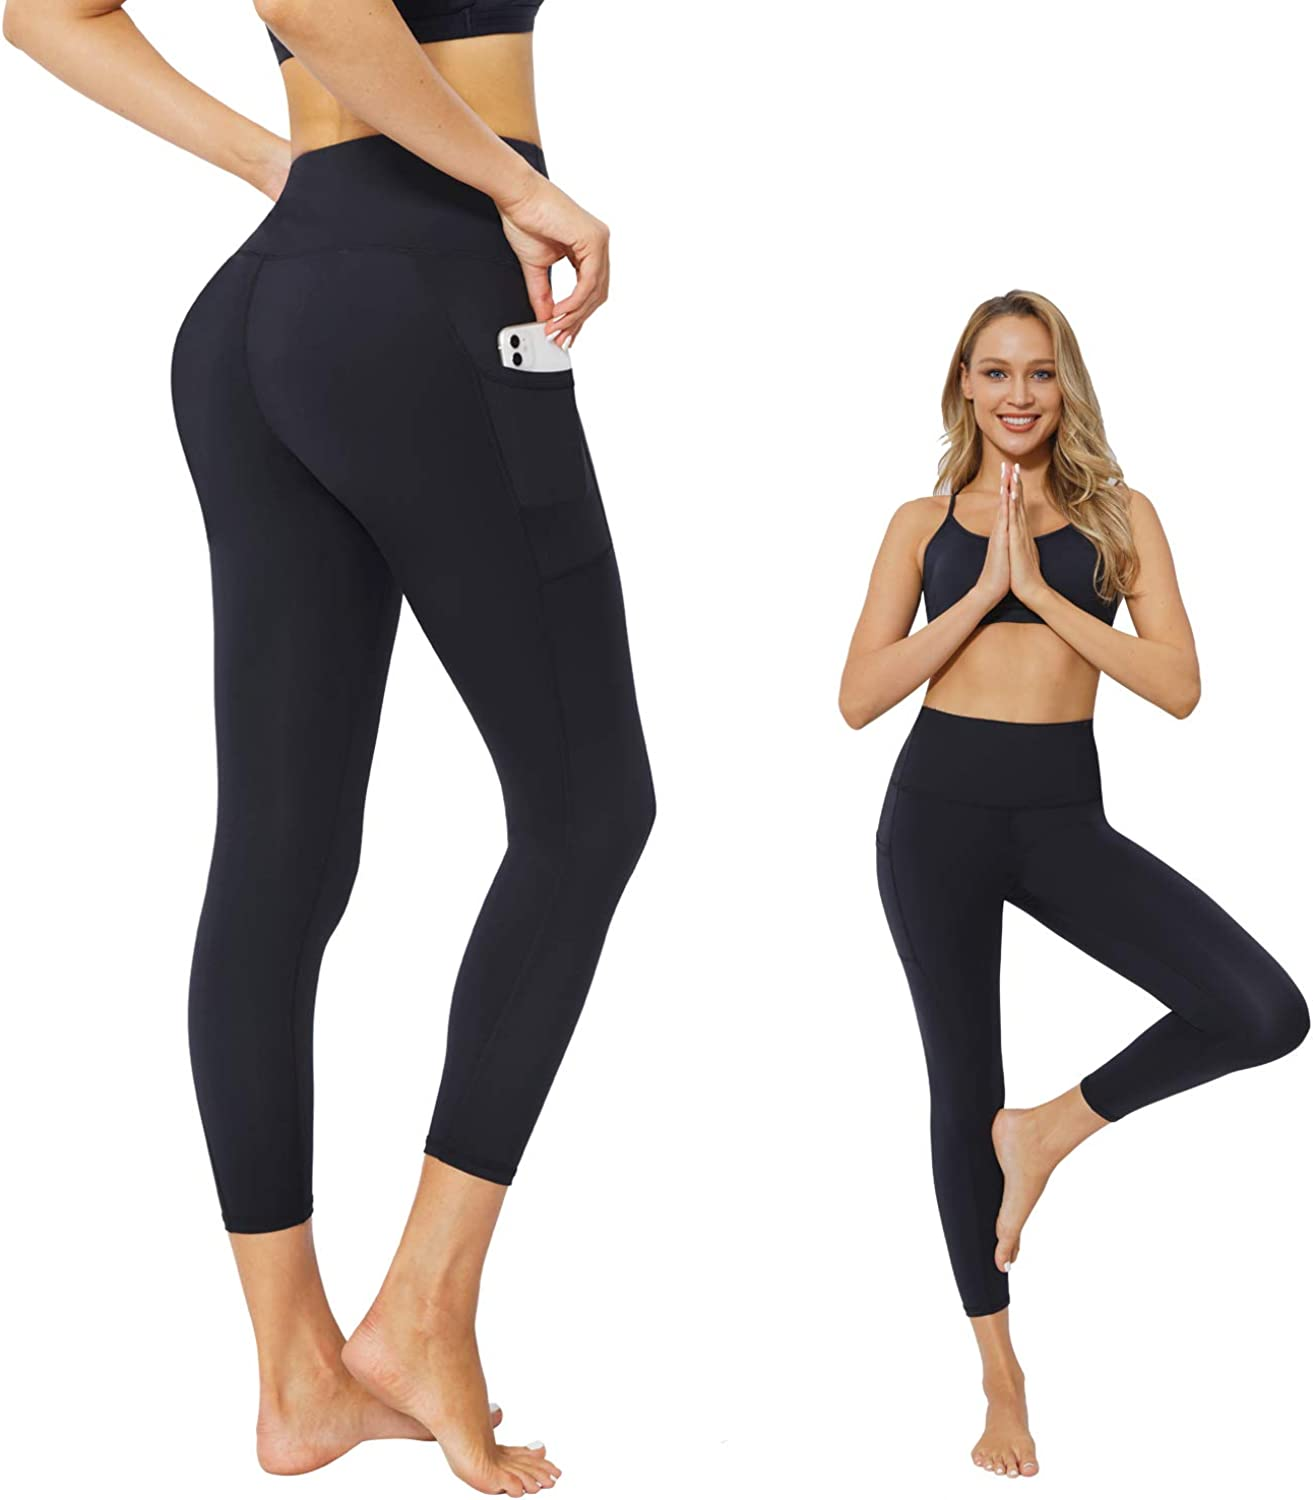 JEPOZRA High Waist Yoga Pants for Women Workout Leggings Pants Stretch Compression Pants